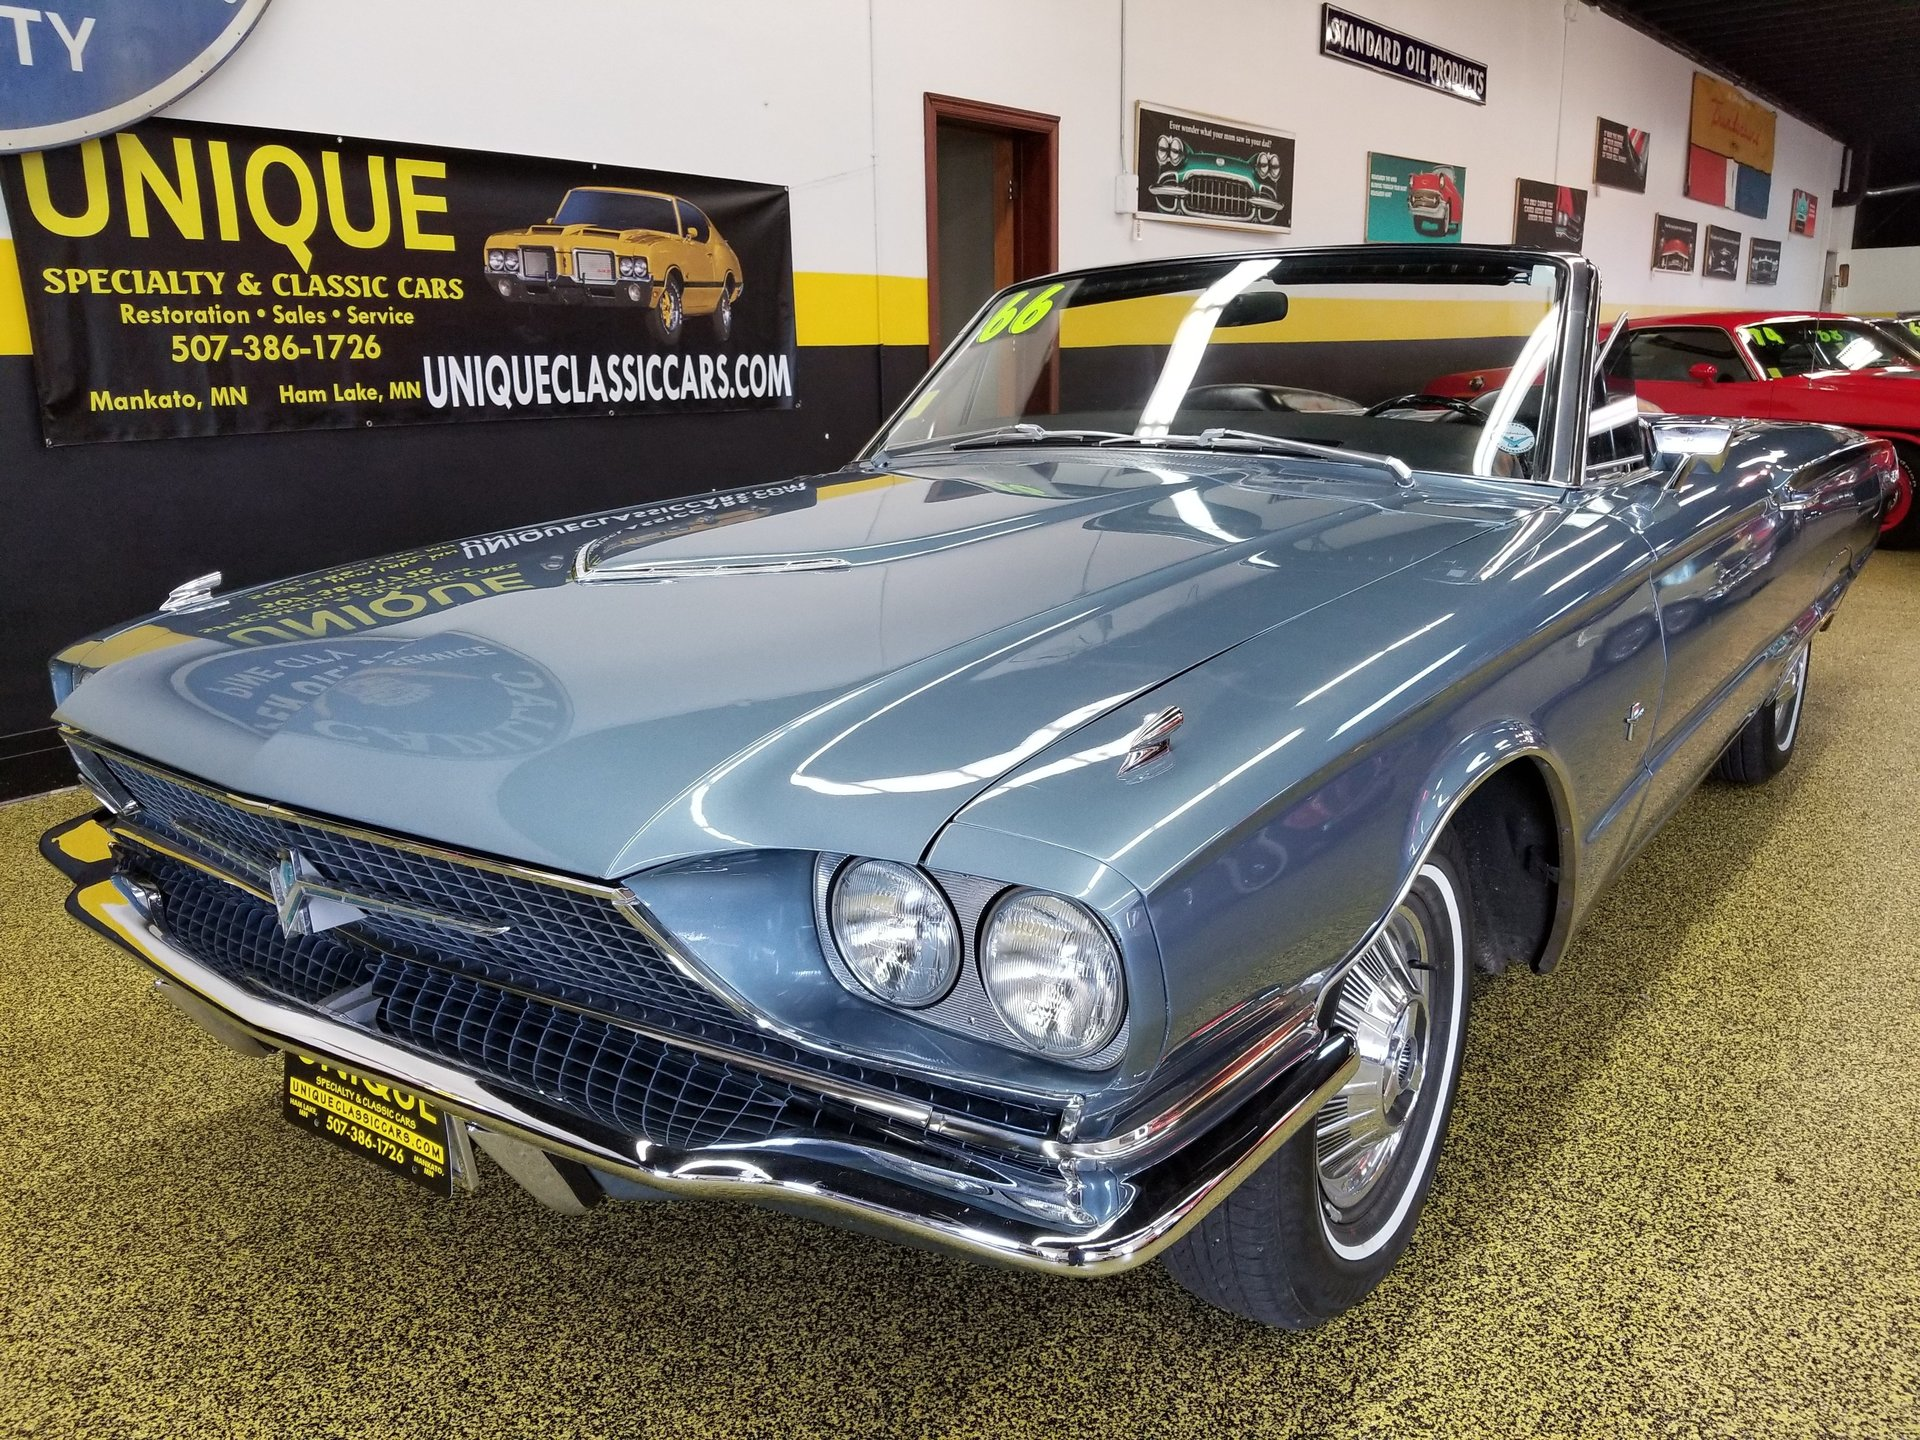 1966 Ford Thunderbird Convertible for sale #66061 | MCG